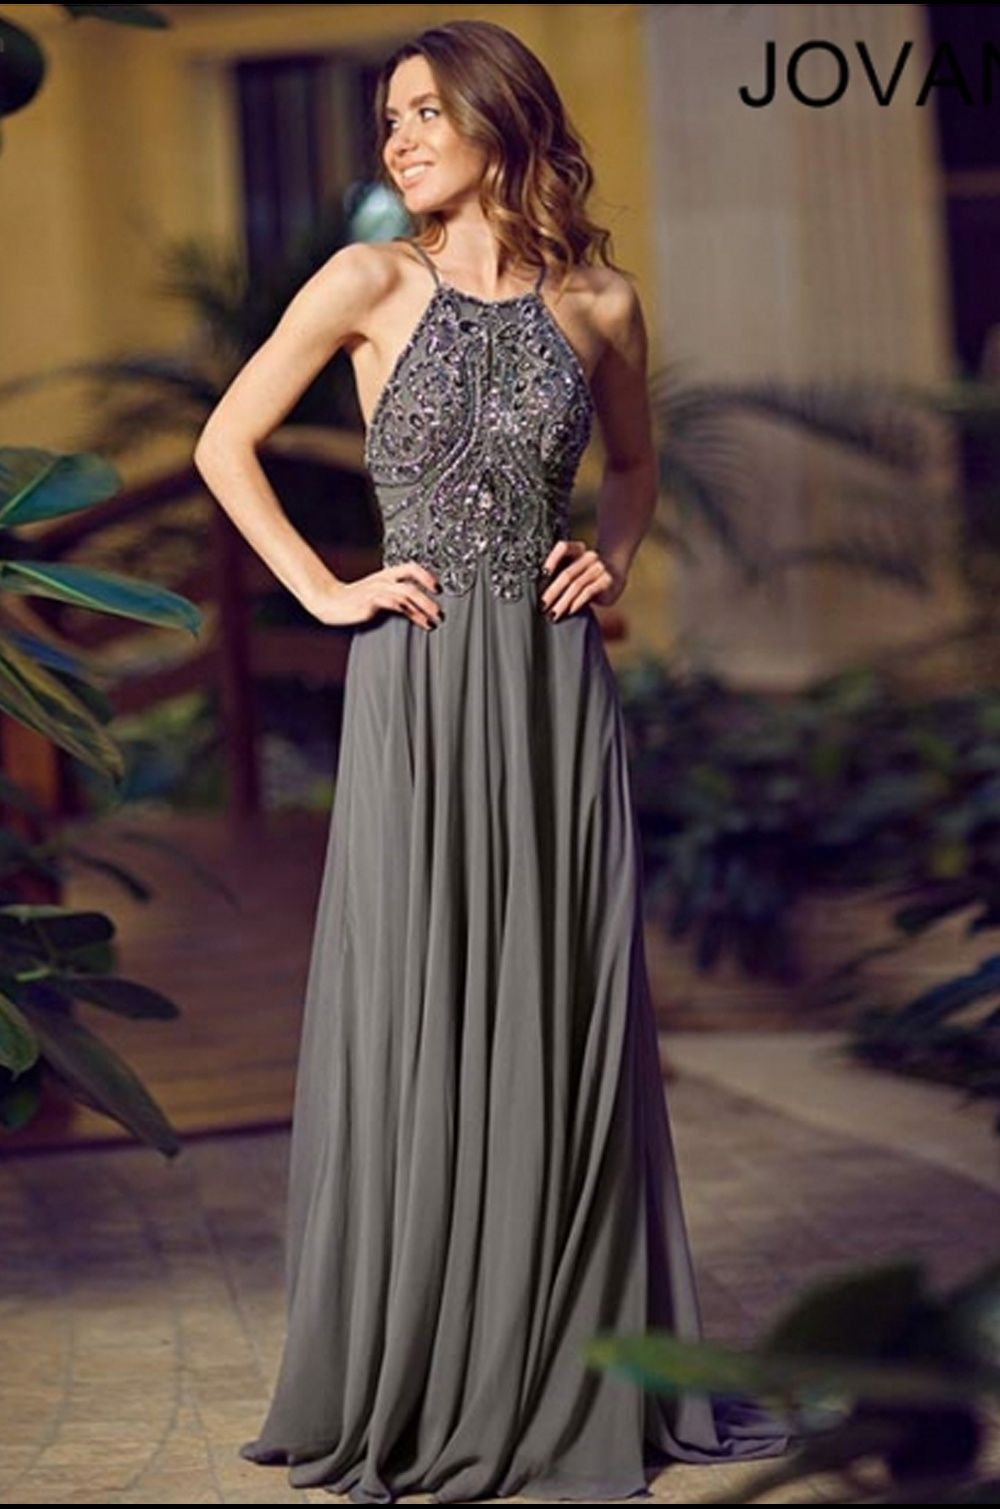 This prom gown from jovani is a beautiful chiffon dress with bold